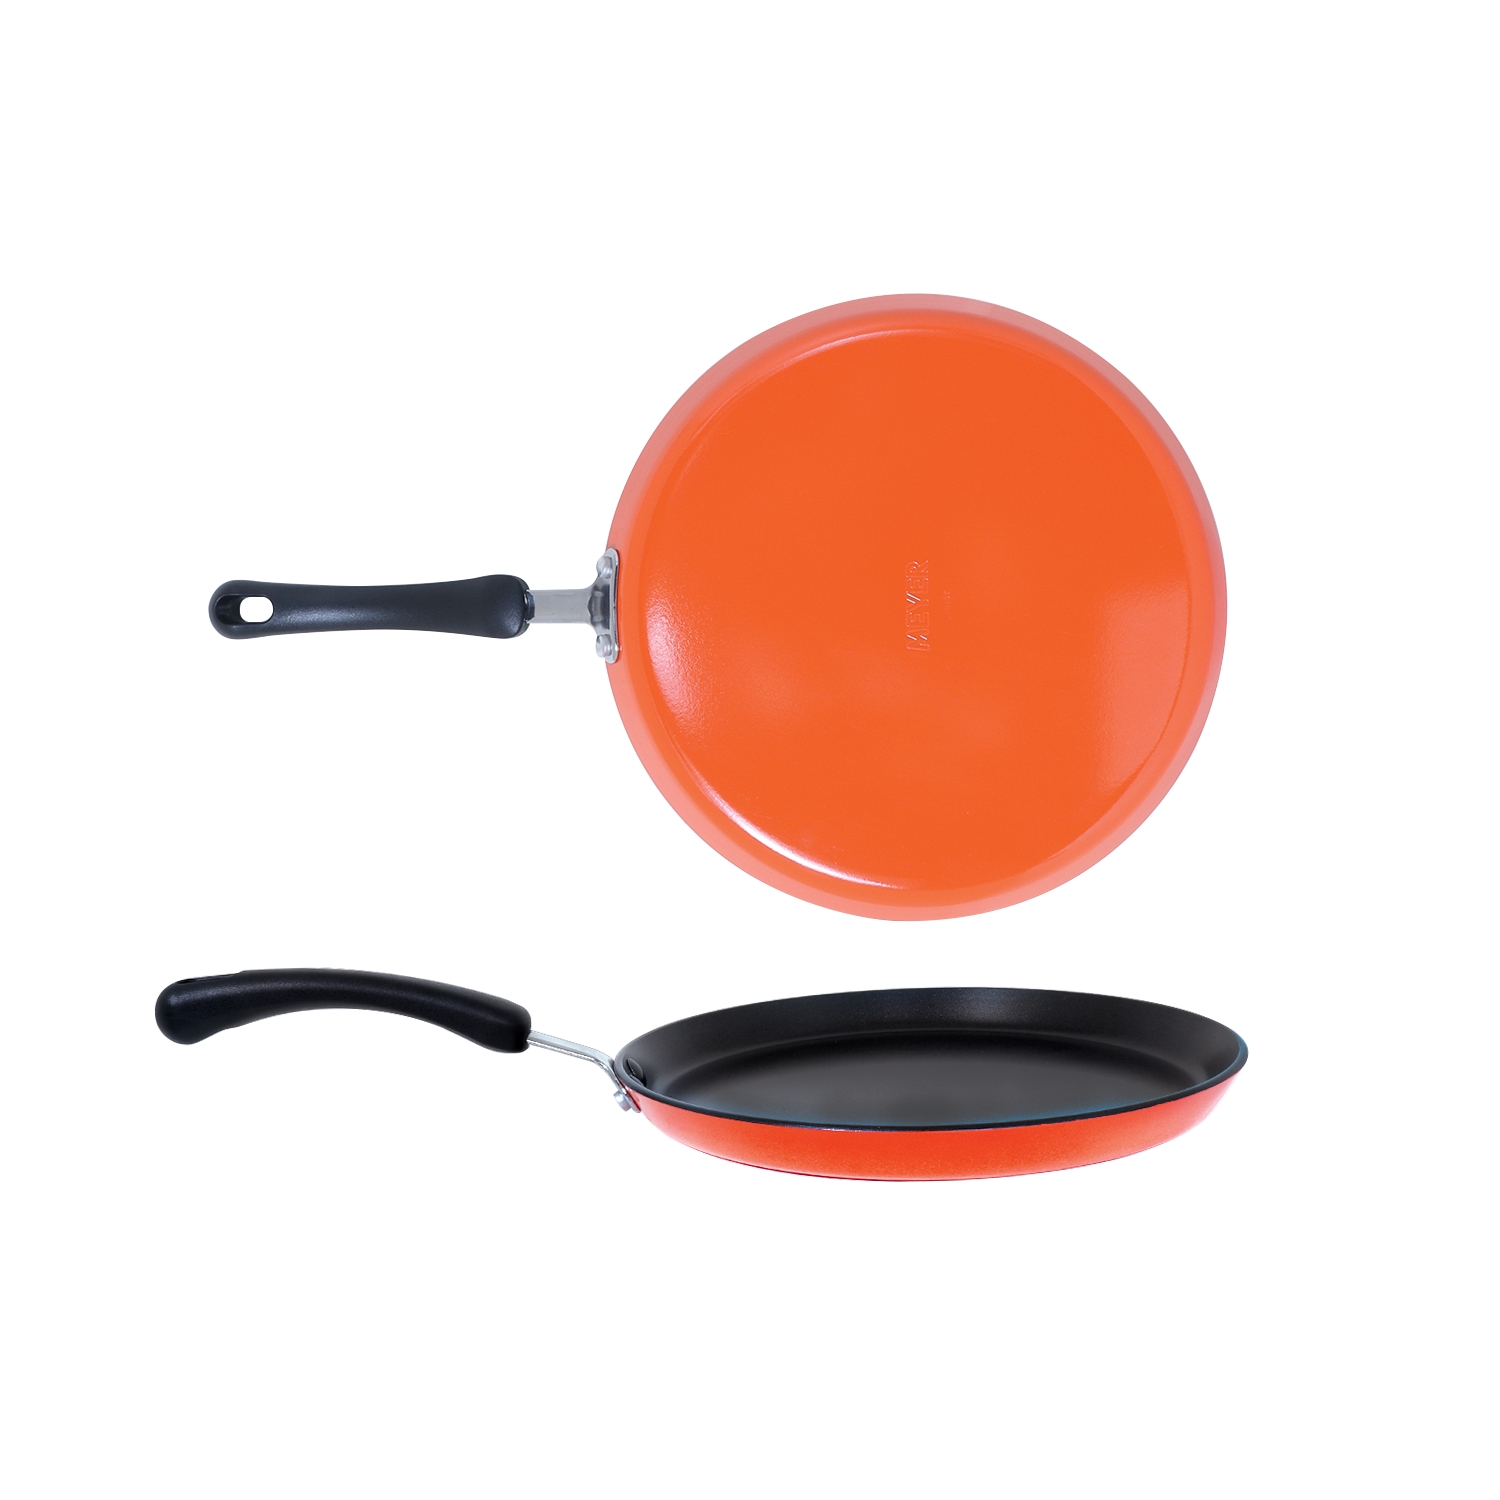 Premium Non Stick 26Cm Flat Dosa Tawa 4Mm Thick, Orange Aluminum Tawa in Orange Colour by meyer